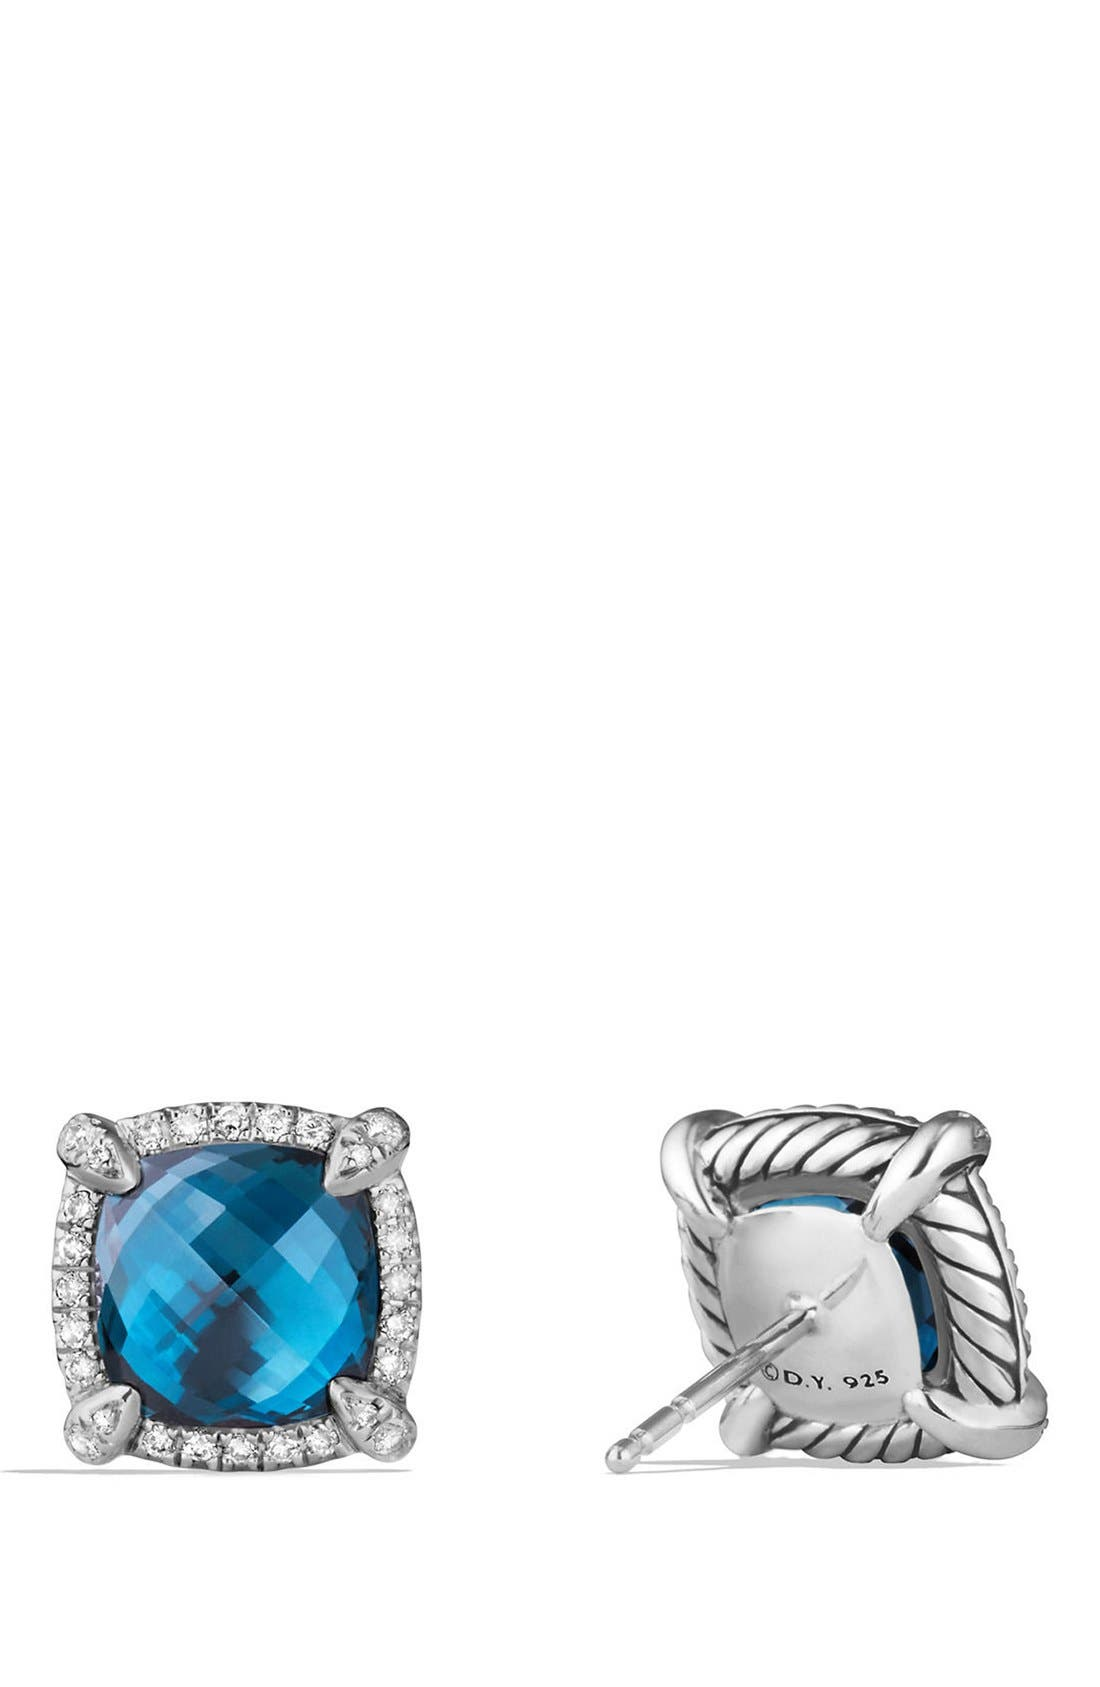 Alternate Image 2  - David Yurman 'Châtelaine' Pavé Bezel Stud Earrings with Diamonds